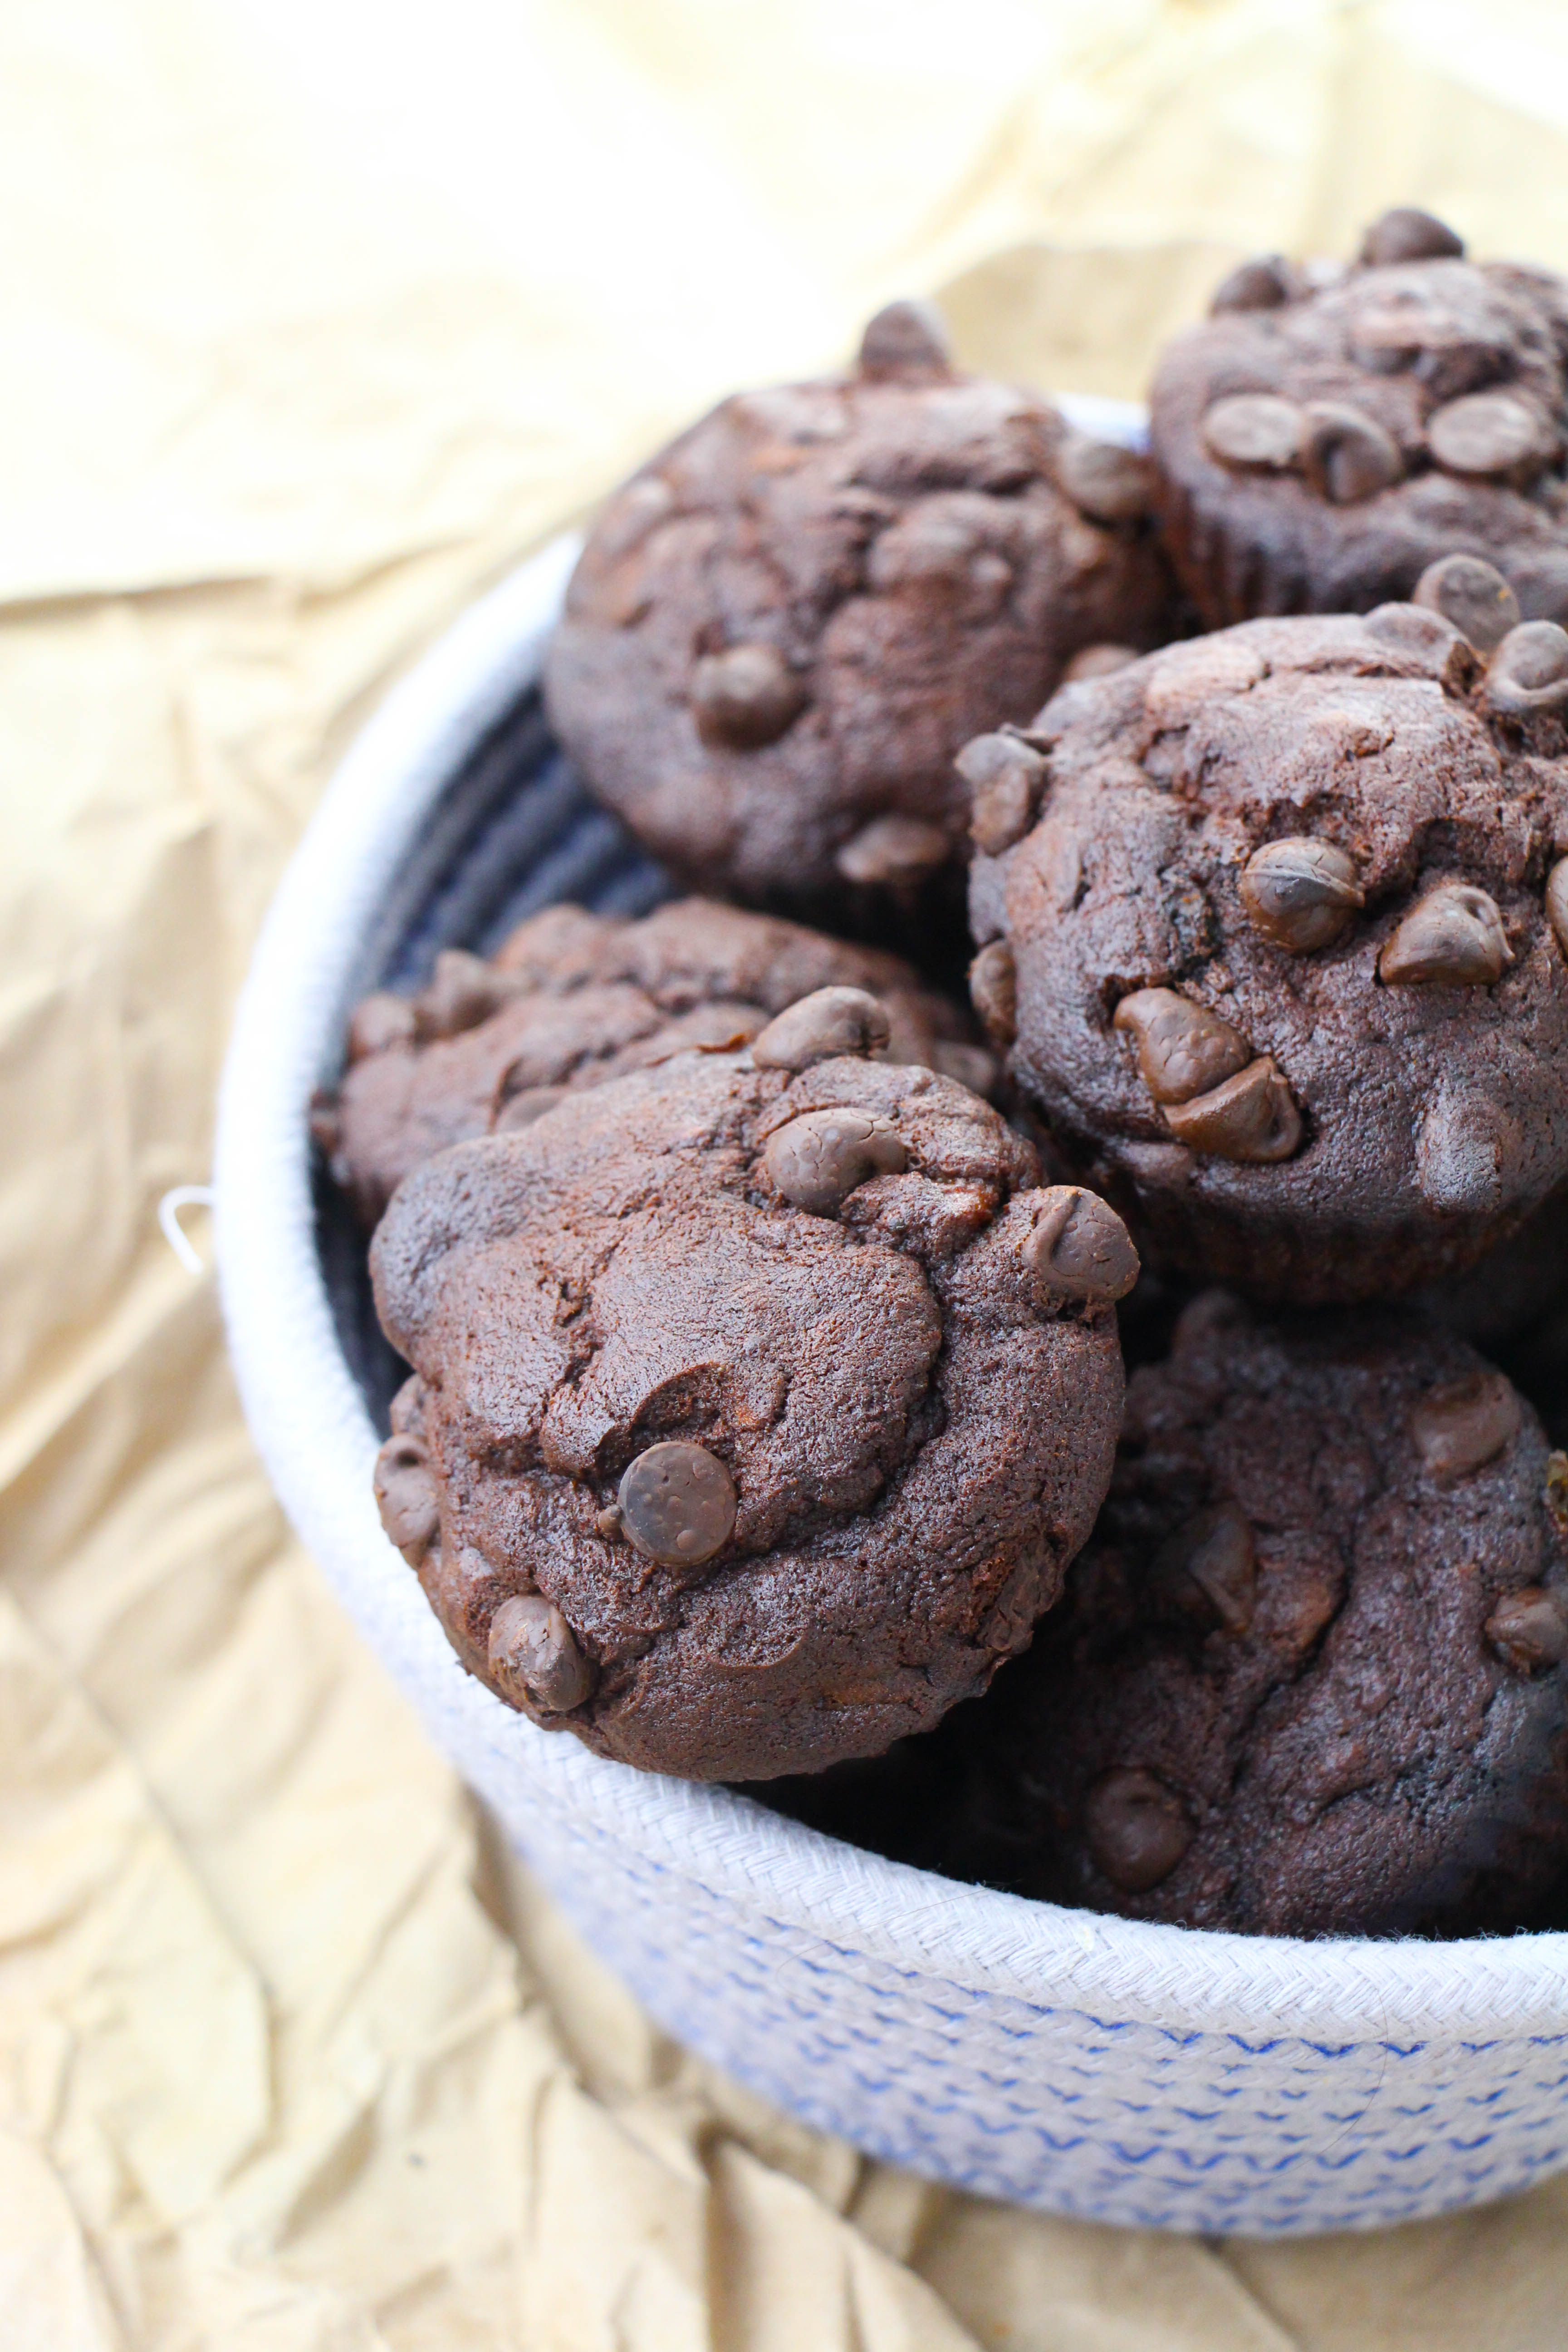 Baked Double Chocolate Banana Muffins in a white bowl on table